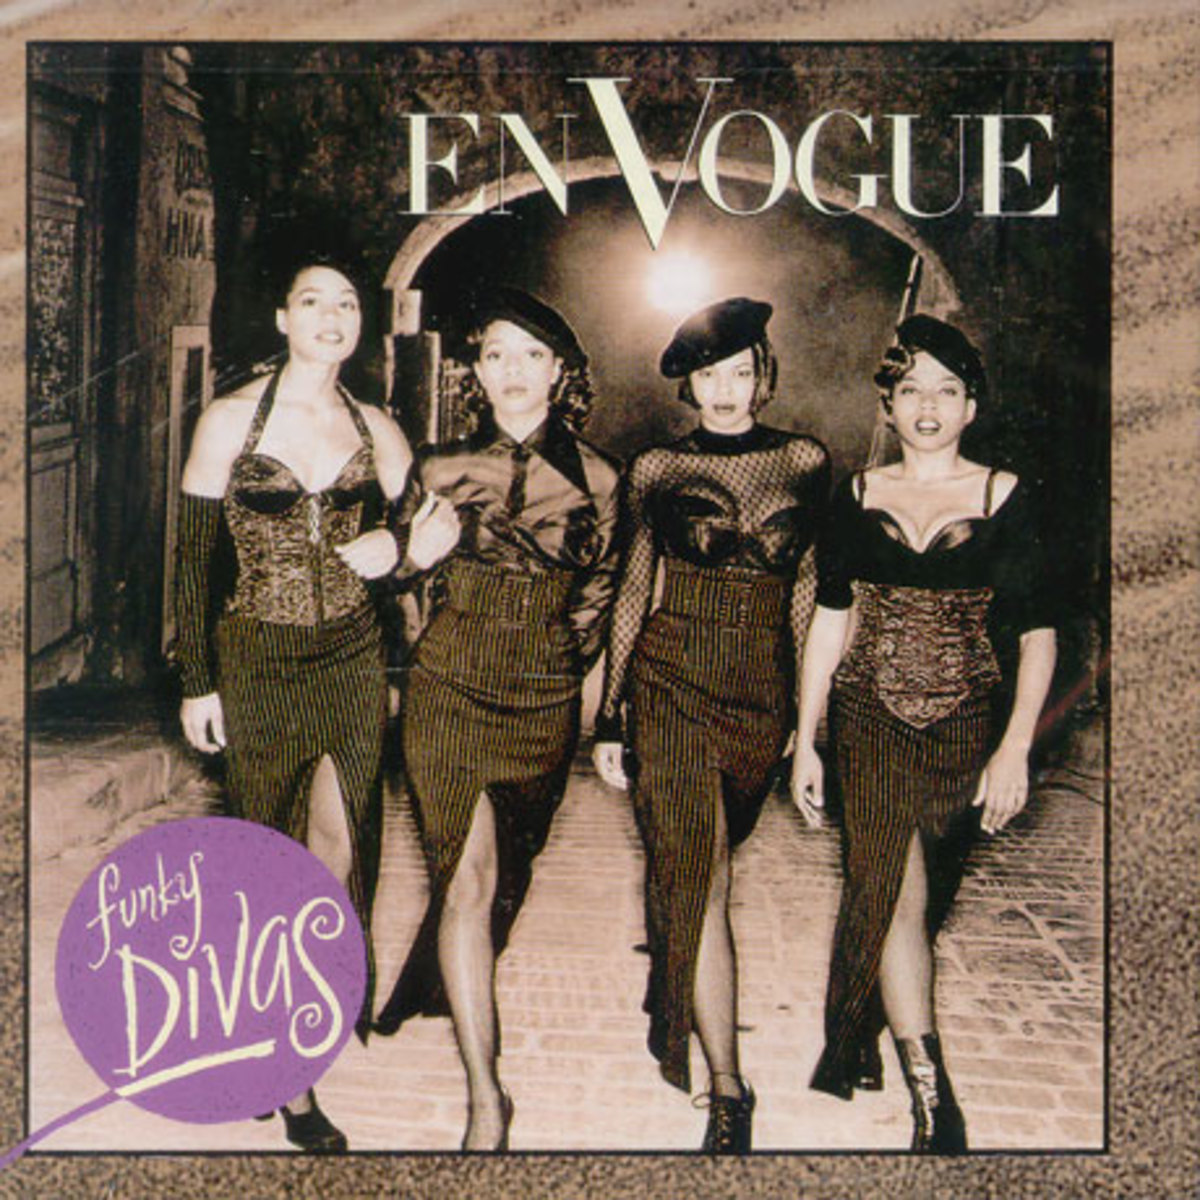 In 1992, En Vogue released their 2nd album Funky Divas.  Funky Divas took the group to a higher level with a more polished and commercially pleasing sound.